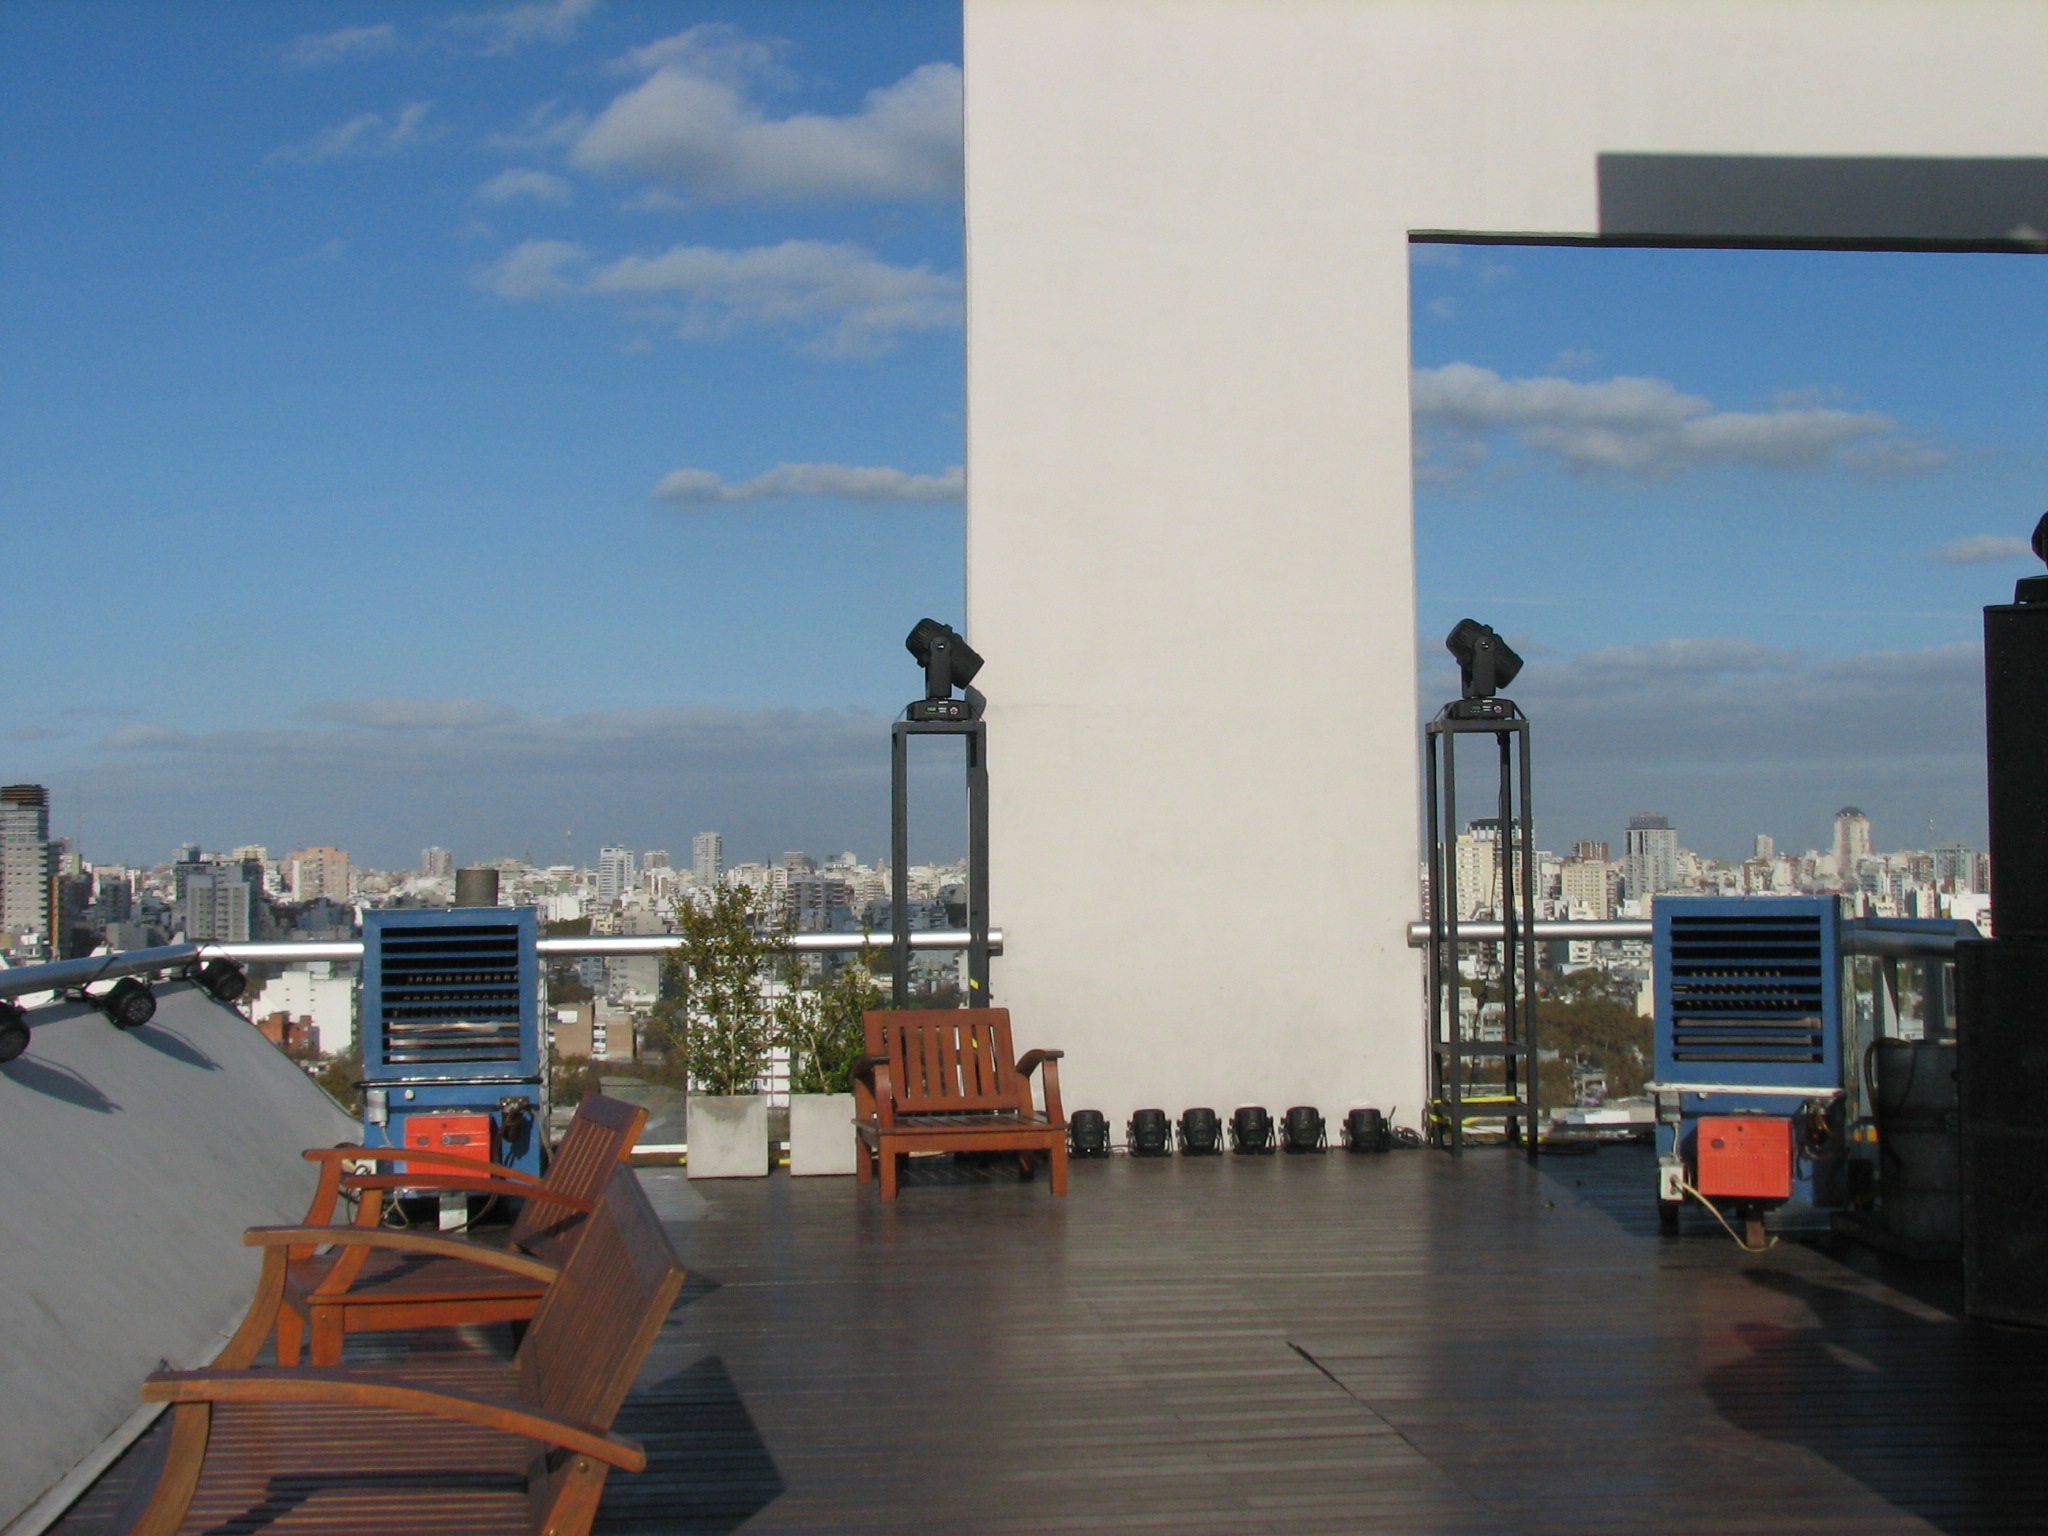 Hotel Hollywood Suites and Lofts- Calefacción terraza piso 21.